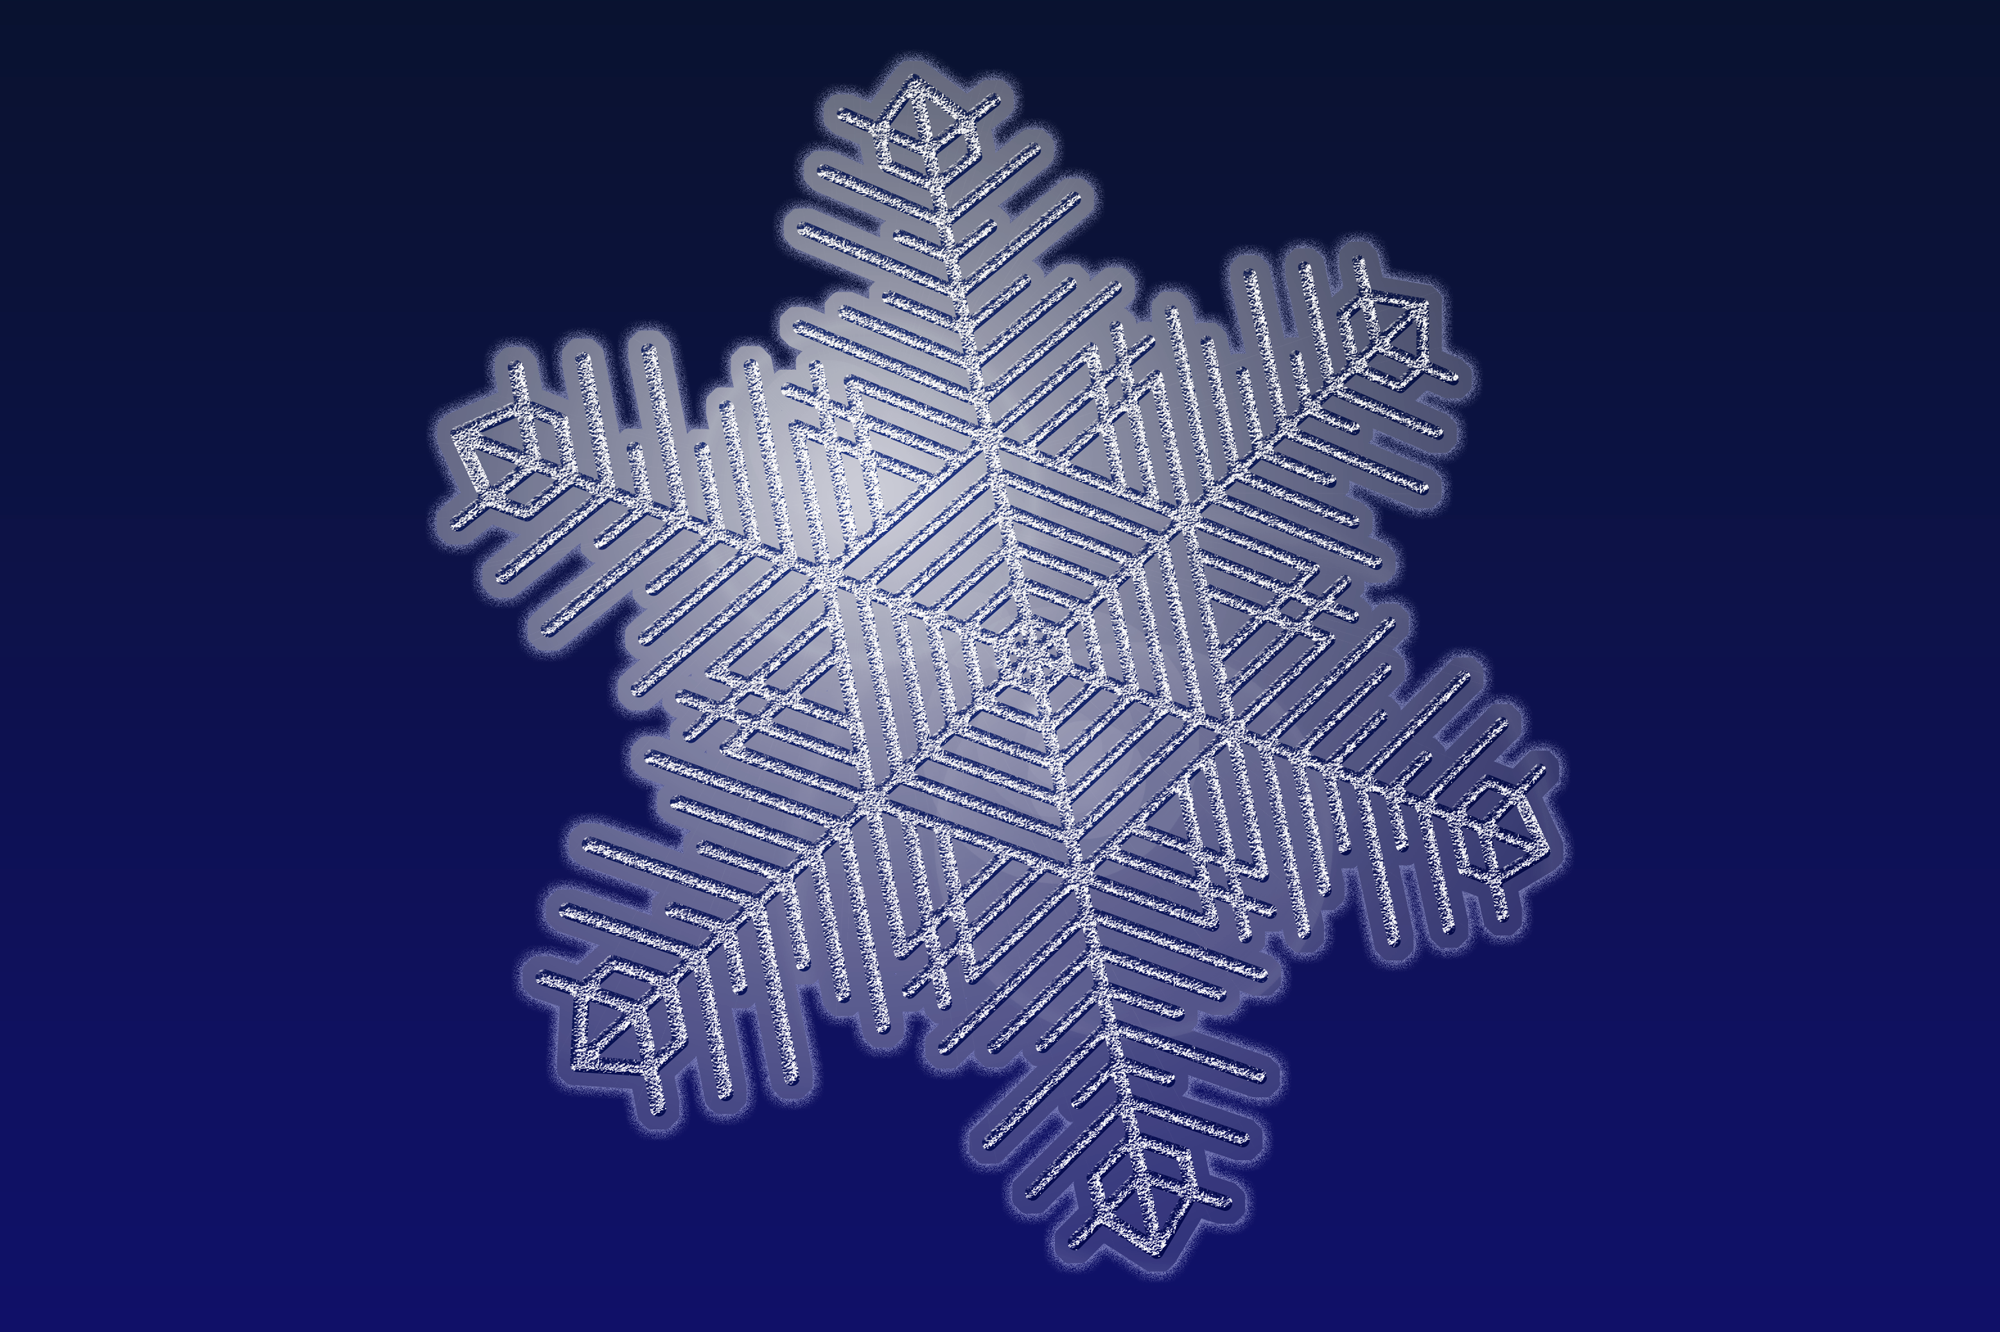 Photoshop snowflake with rasterized effects